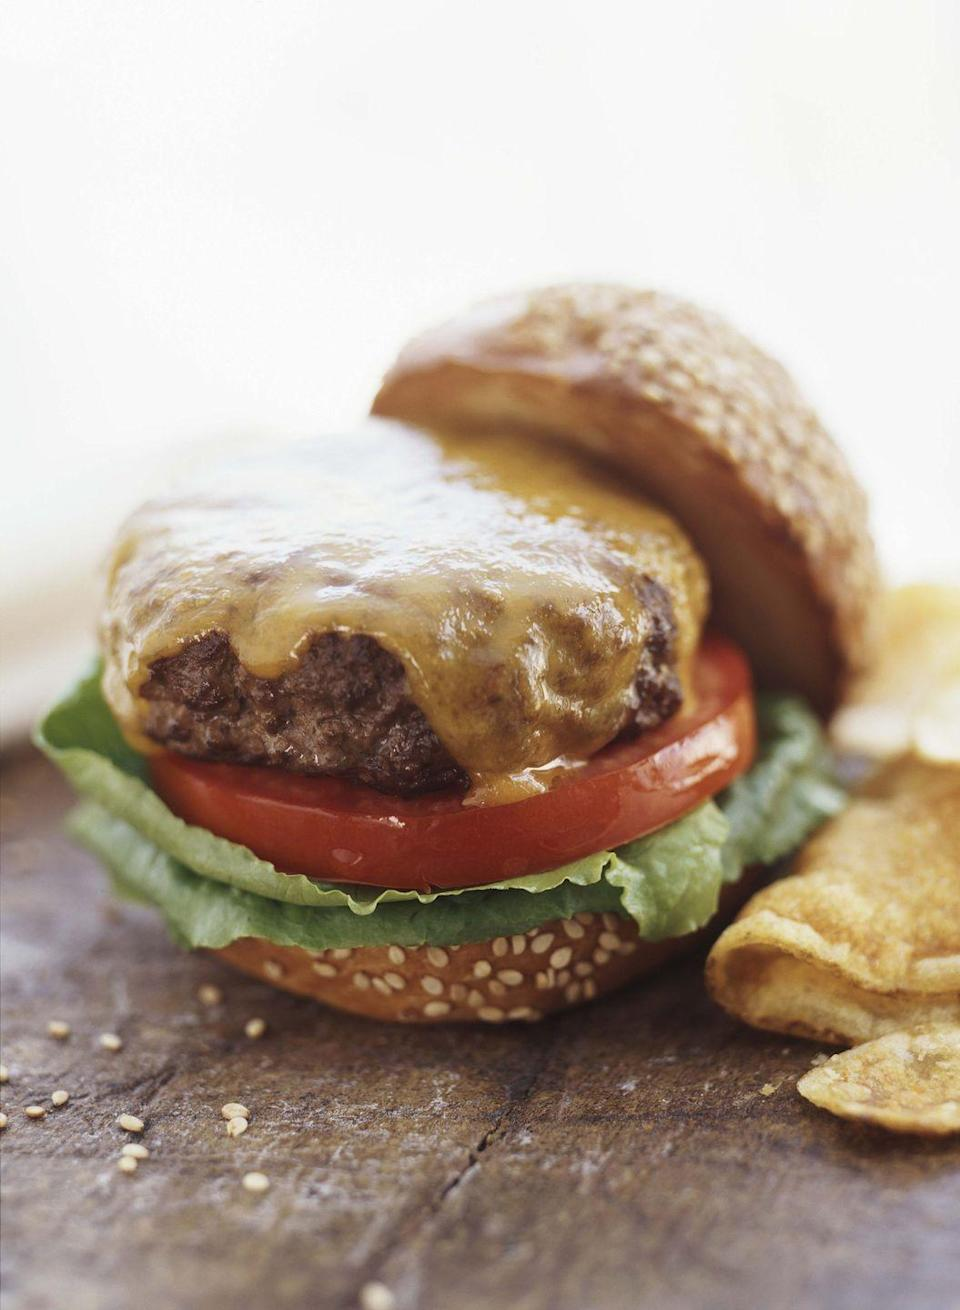 """<p>Cheeseburgers may not have been invented in Colorado (two other states contest this!), but the name """"cheeseburger"""" was indeed trademarked by Louis Ballast of Denver's Humpty Dumpty Drive-In in Denver in 1935. In 1987, a <a href=""""http://www.roadsideamerica.com/story/23581"""" rel=""""nofollow noopener"""" target=""""_blank"""" data-ylk=""""slk:roadside monument"""" class=""""link rapid-noclick-resp"""">roadside monument</a> was dedicated to this accomplishment. </p>"""